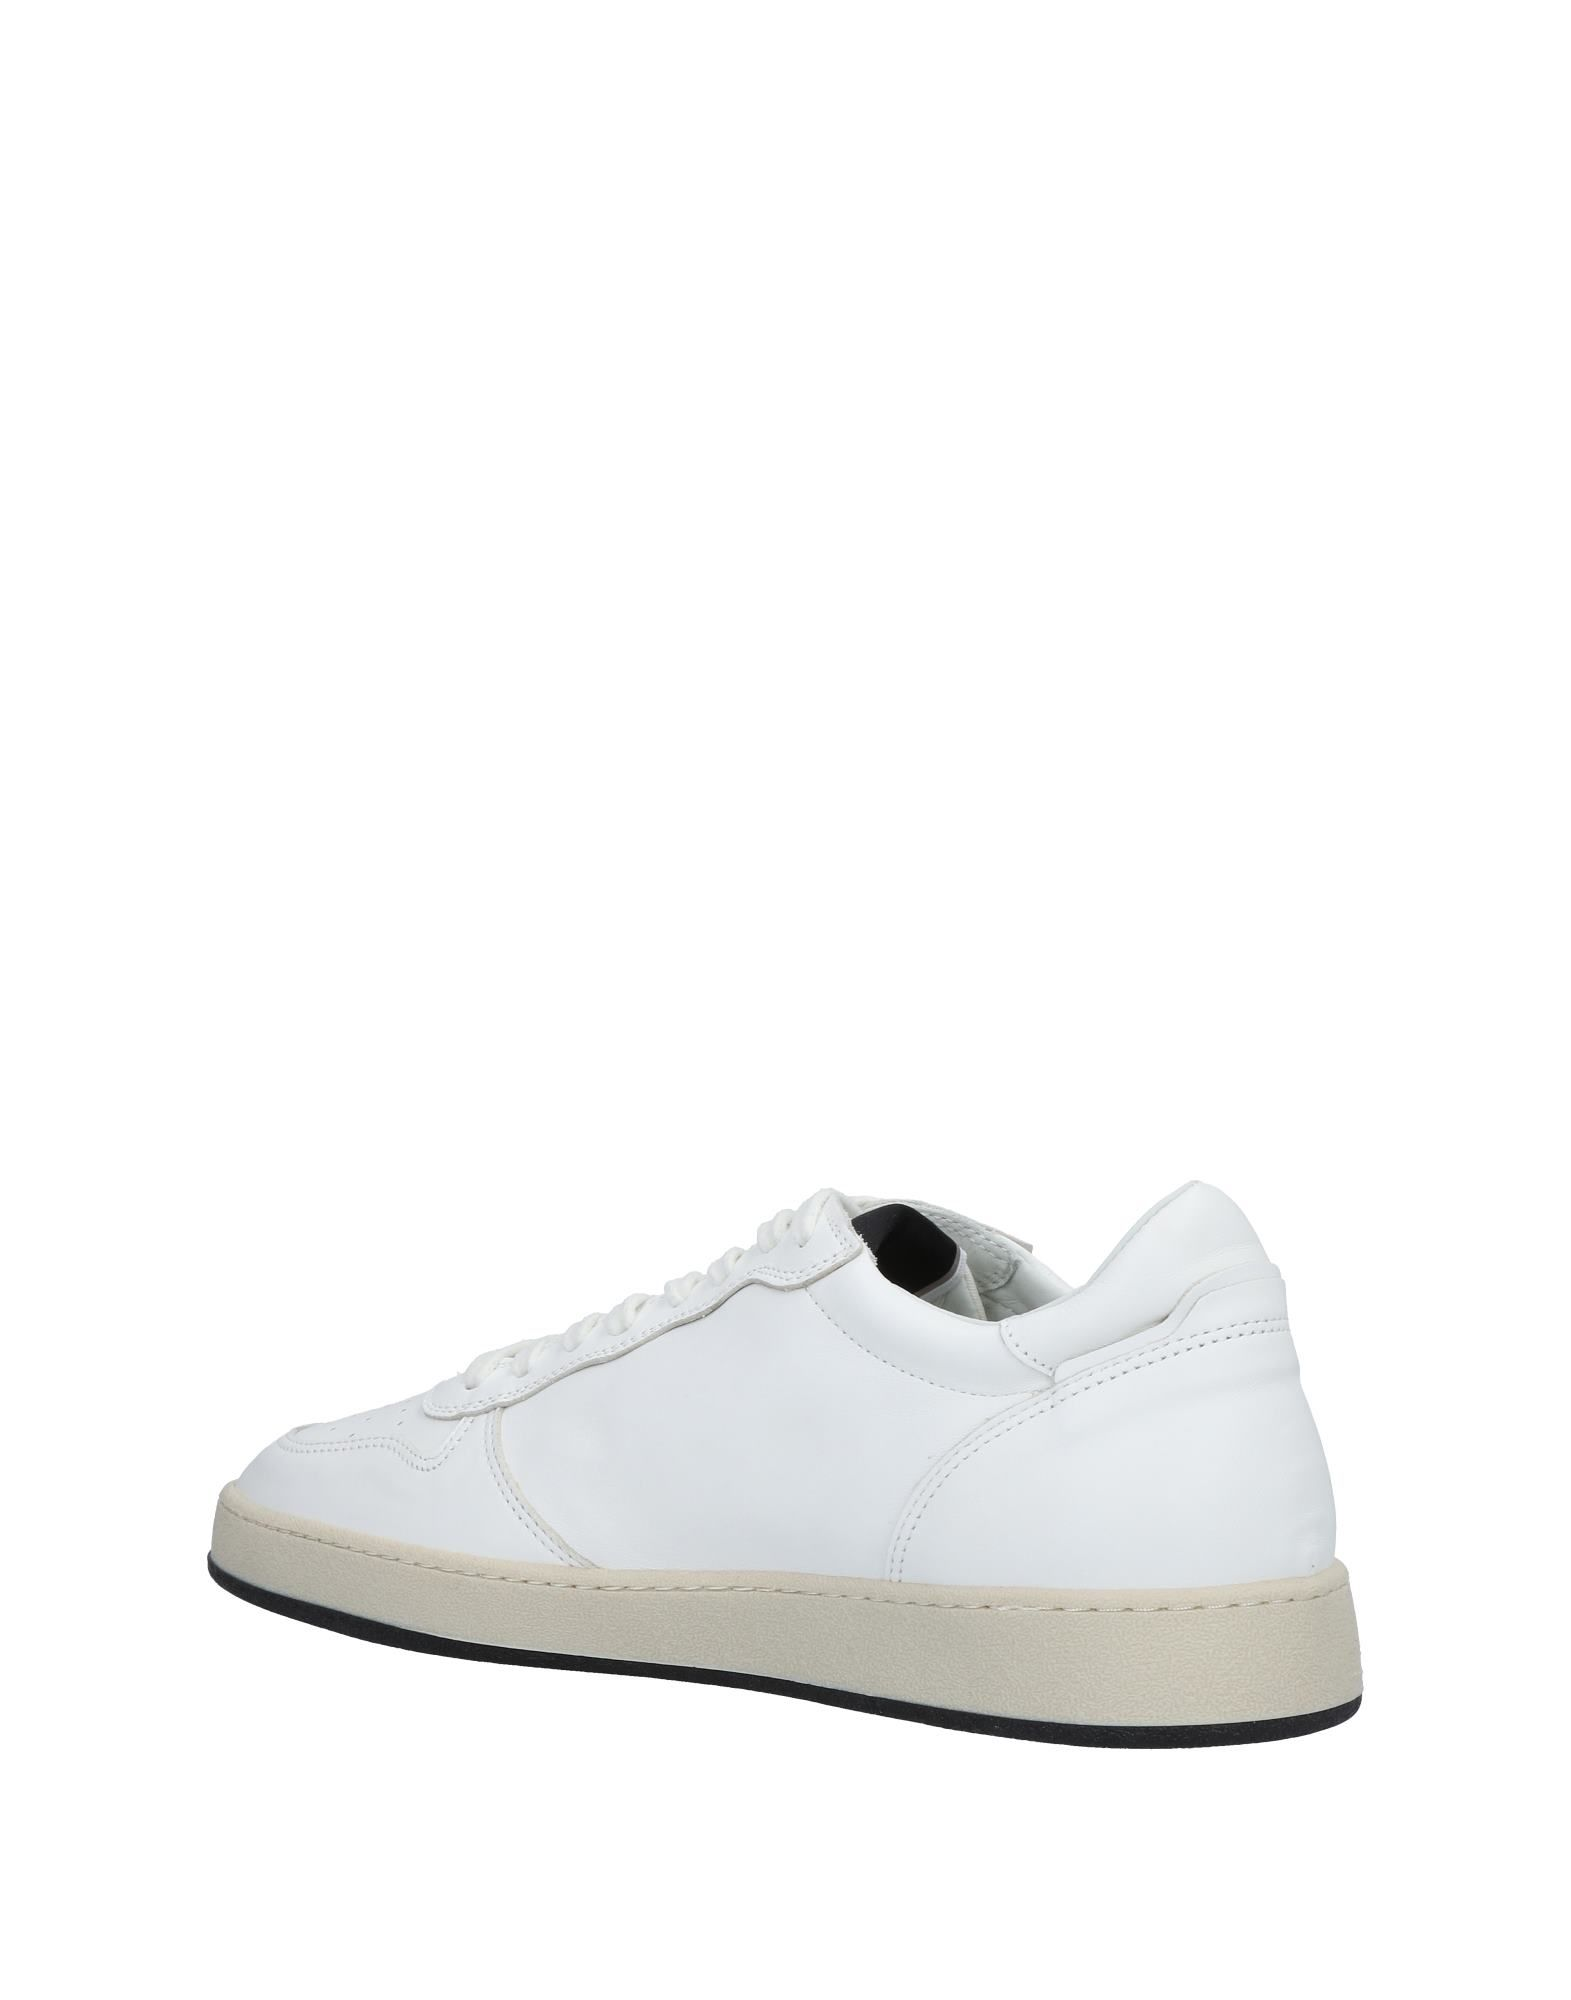 Philippe Model Sneakers - Men Philippe Philippe Philippe Model Sneakers online on  Australia - 11479830RS b299e6